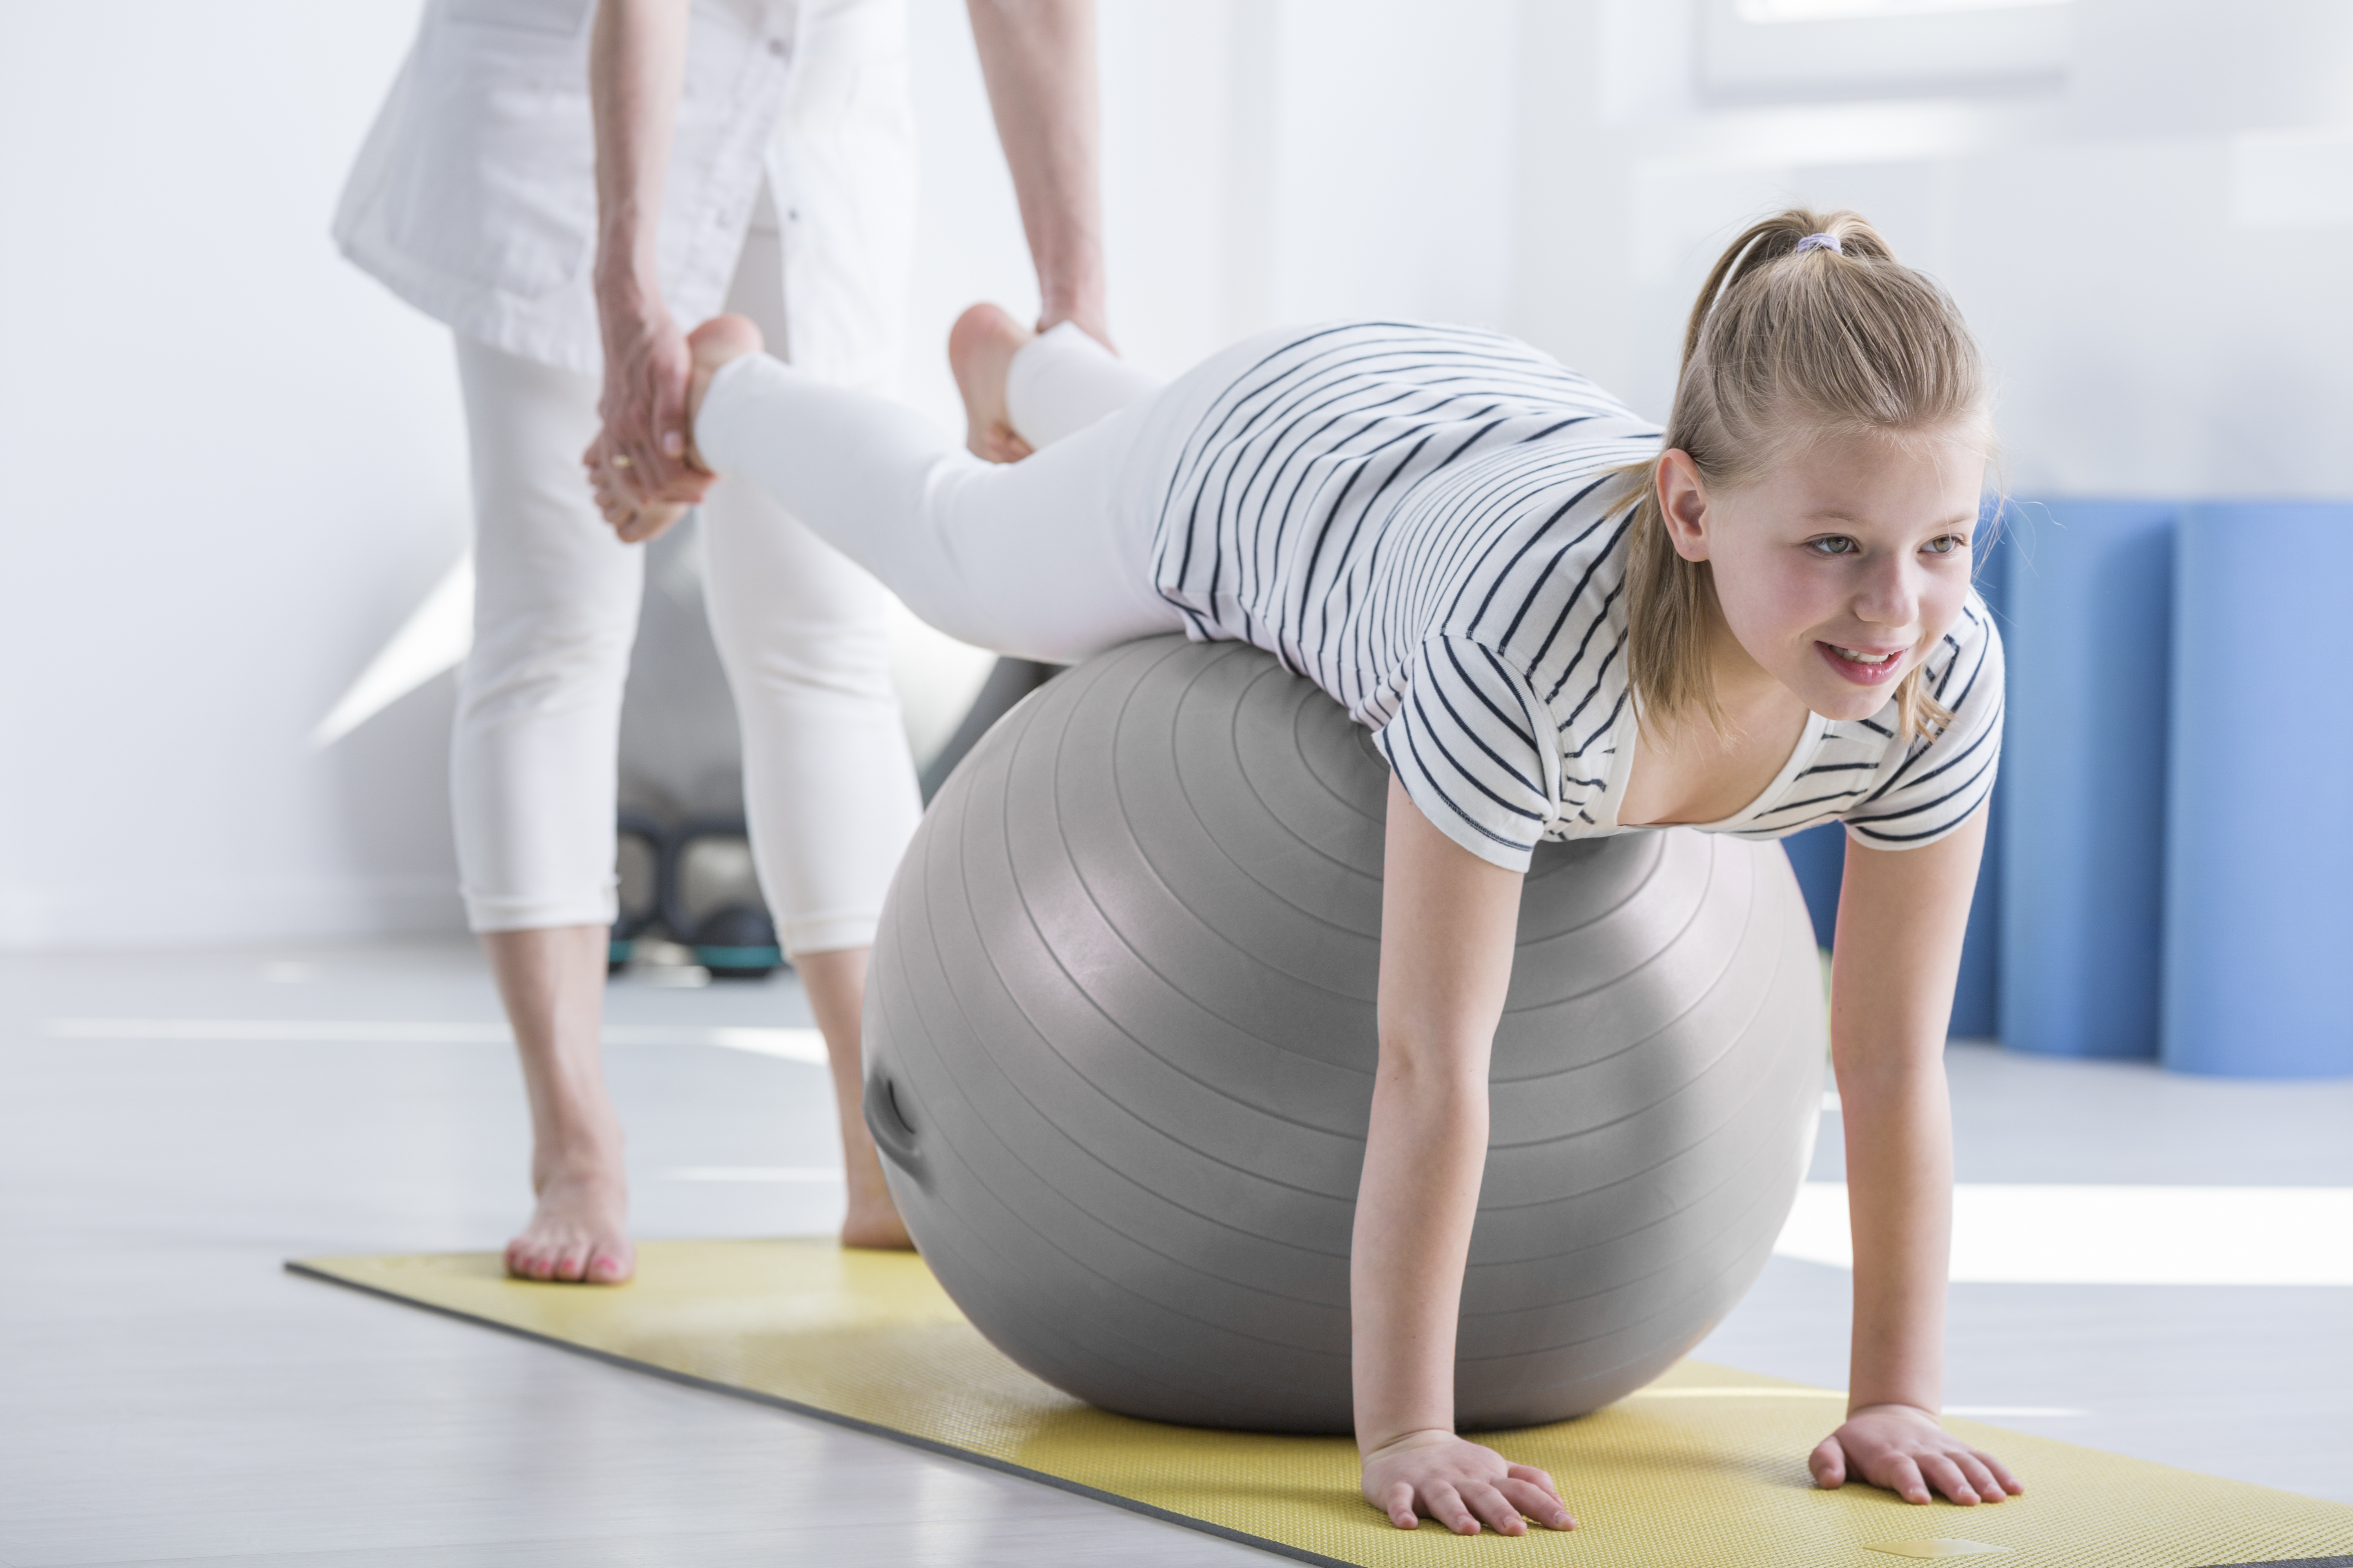 Smiling young girl lying on ball during pediatric occupational therapy